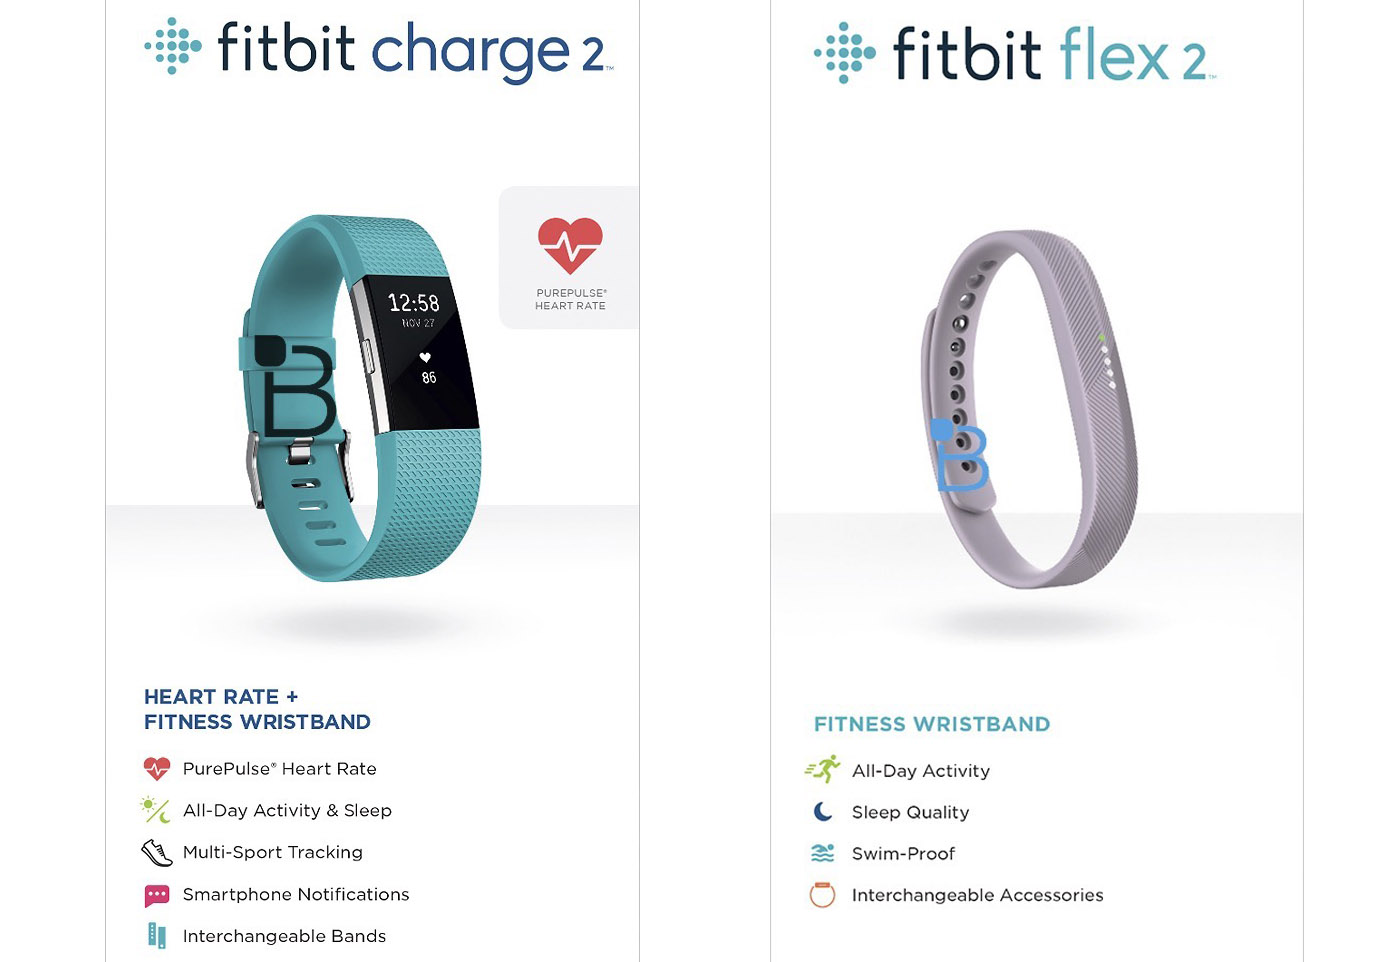 fitbit charge 2 flex 2. Black Bedroom Furniture Sets. Home Design Ideas